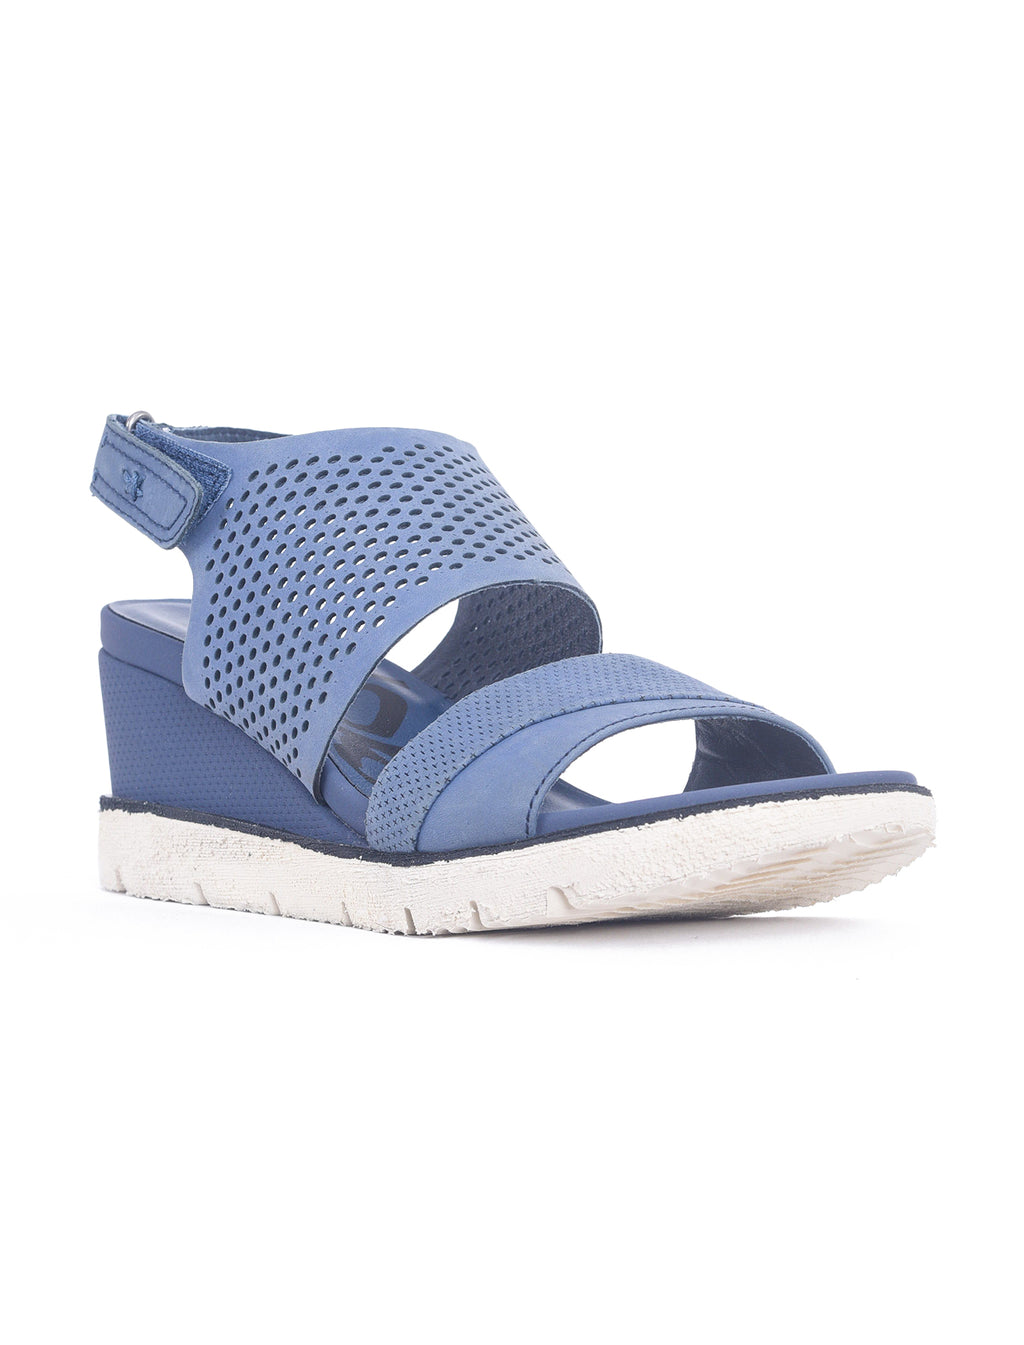 OTBT Shoes Milky Way Sandals, Blue